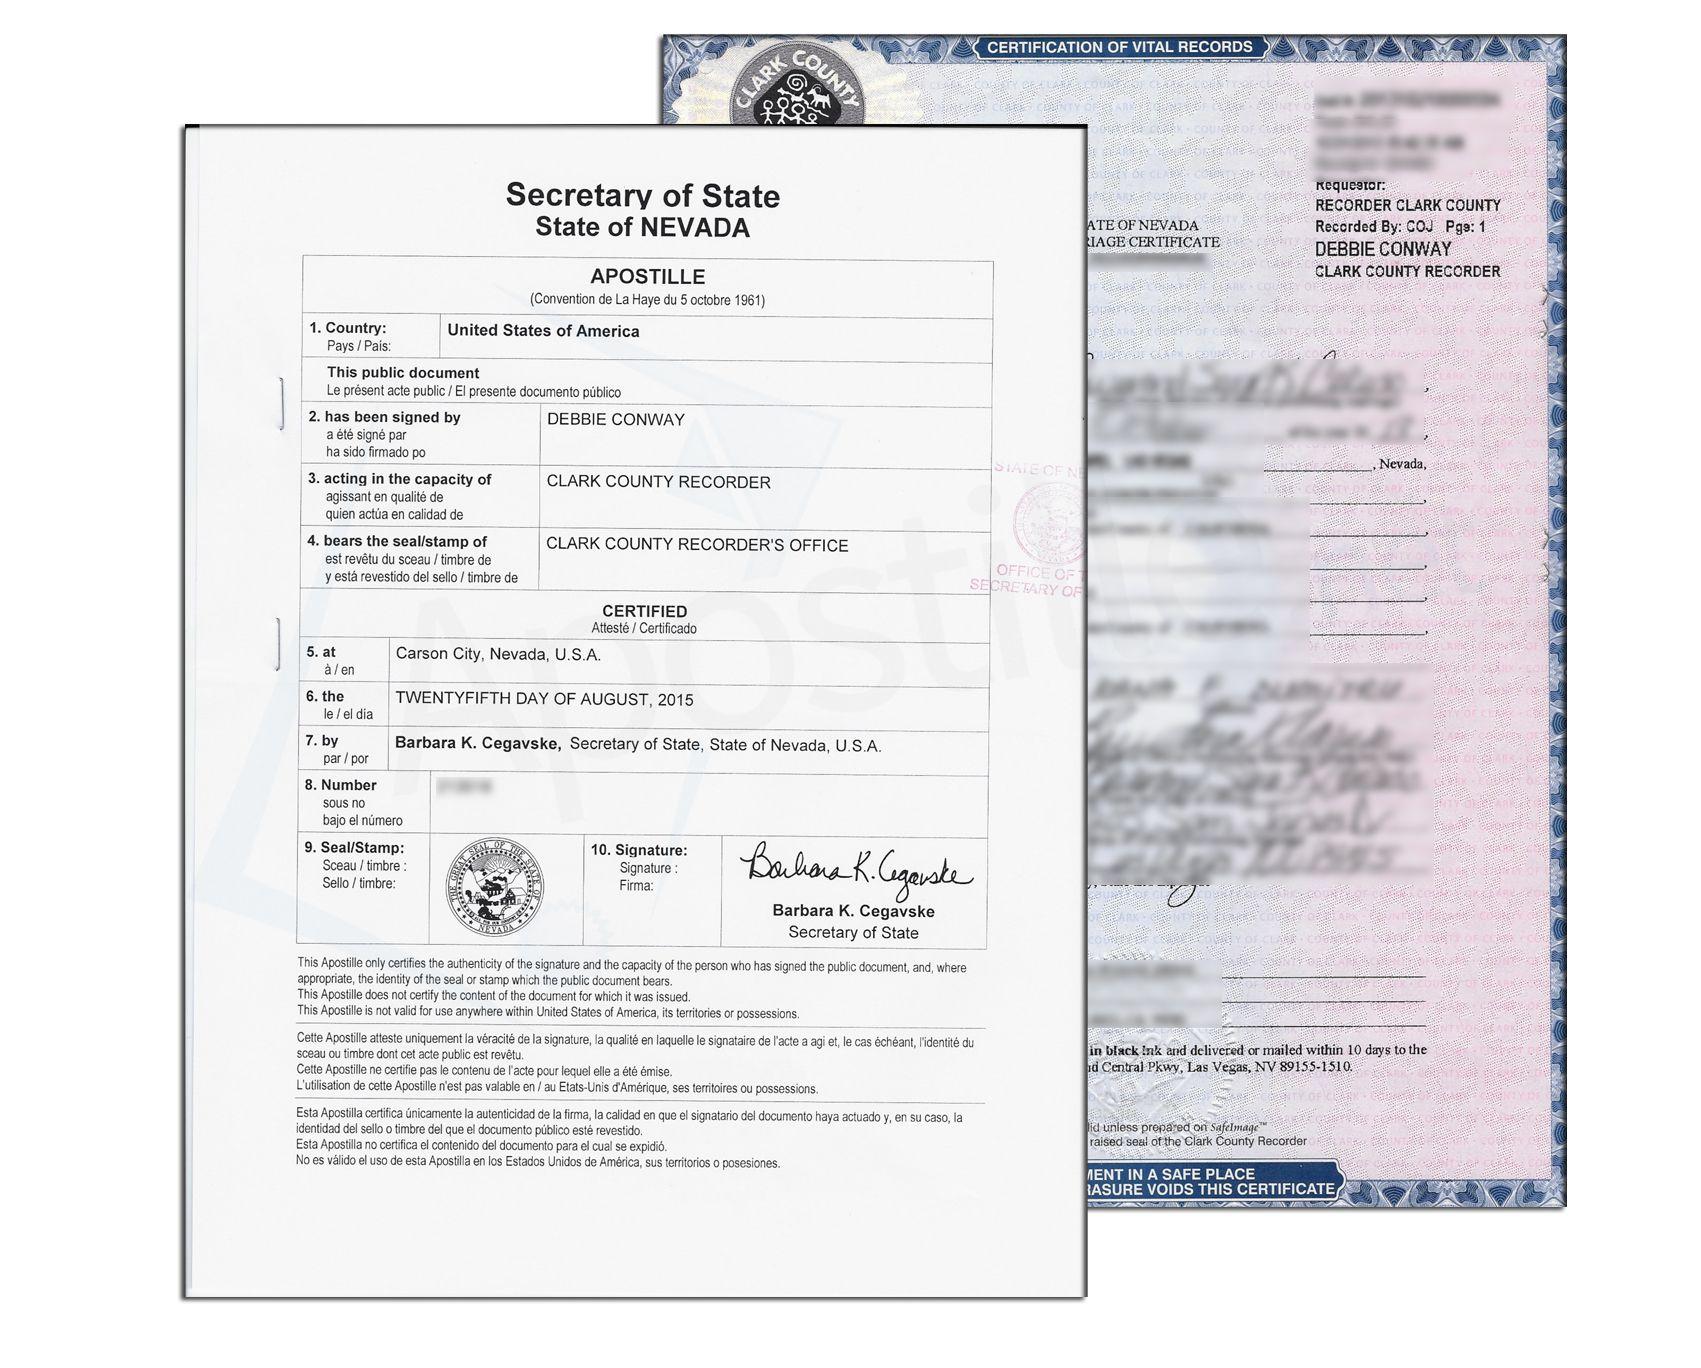 State of Nevada Corporate Charter Certificate issued by Barbara K ...